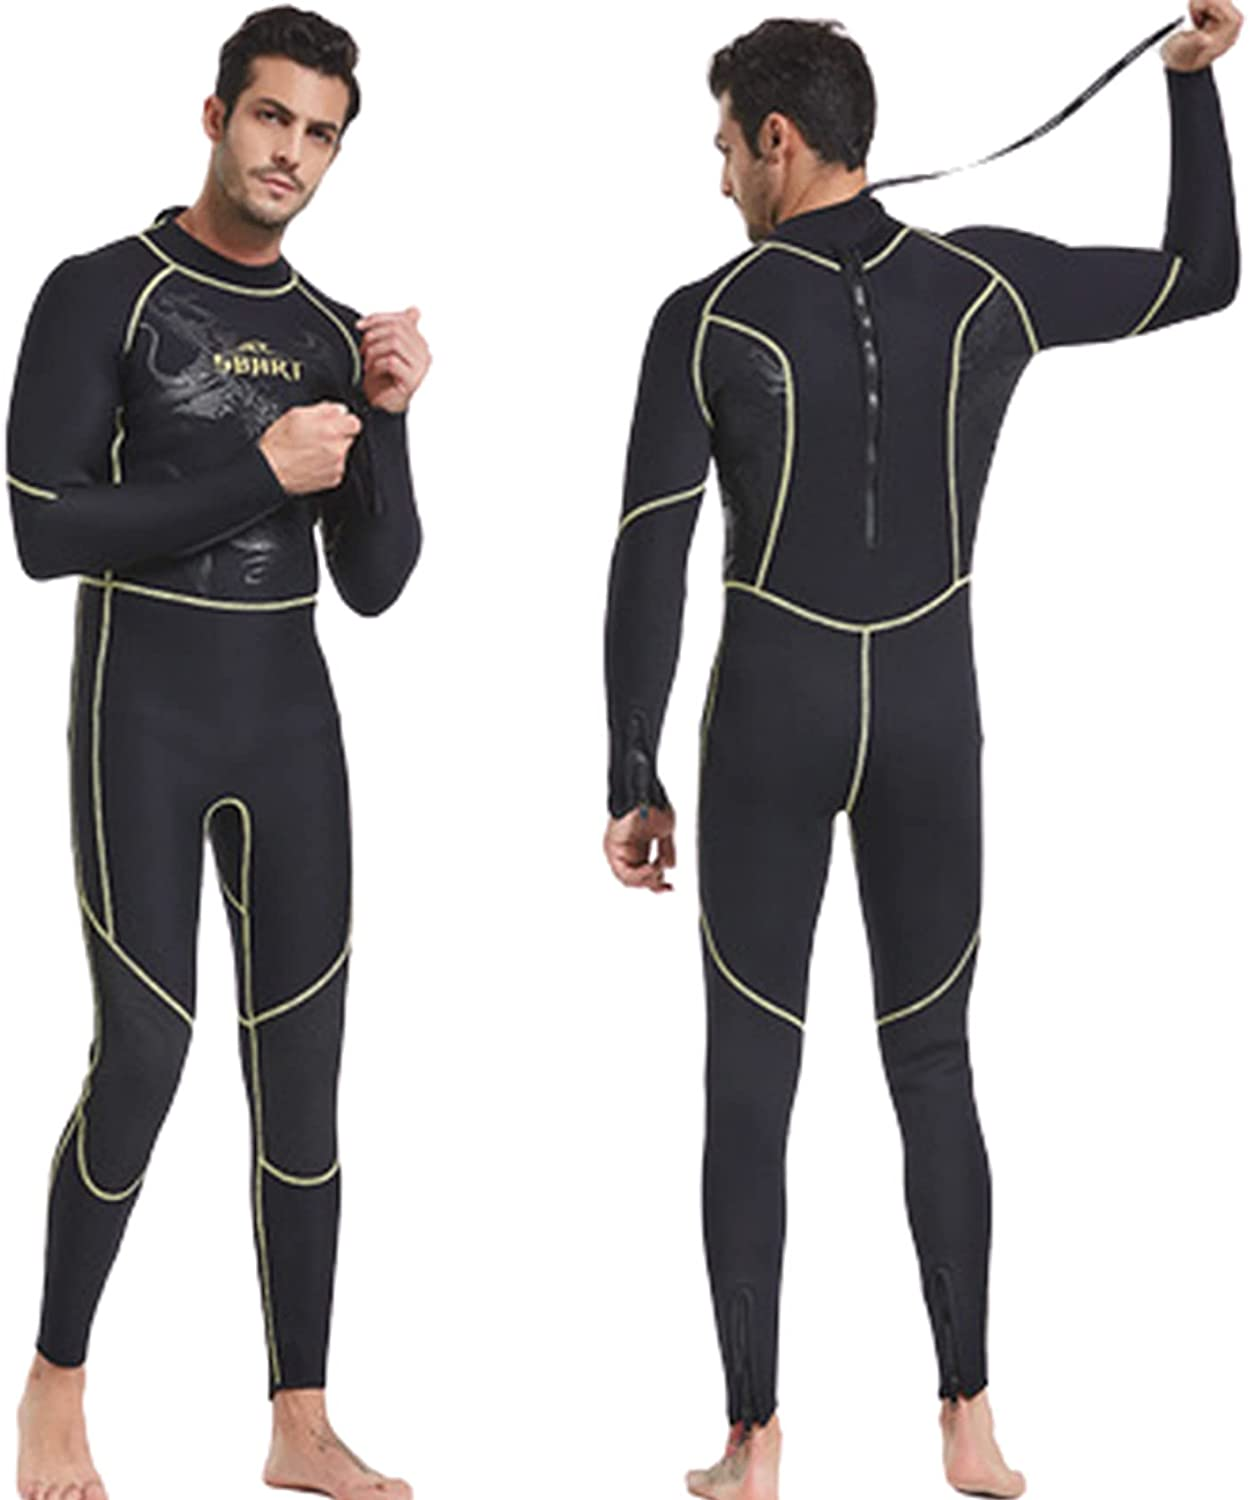 JHMM 3MM Neoprene Full Body online shopping Diving Max 44% OFF Suit Sui Wetsuit Surfing Men